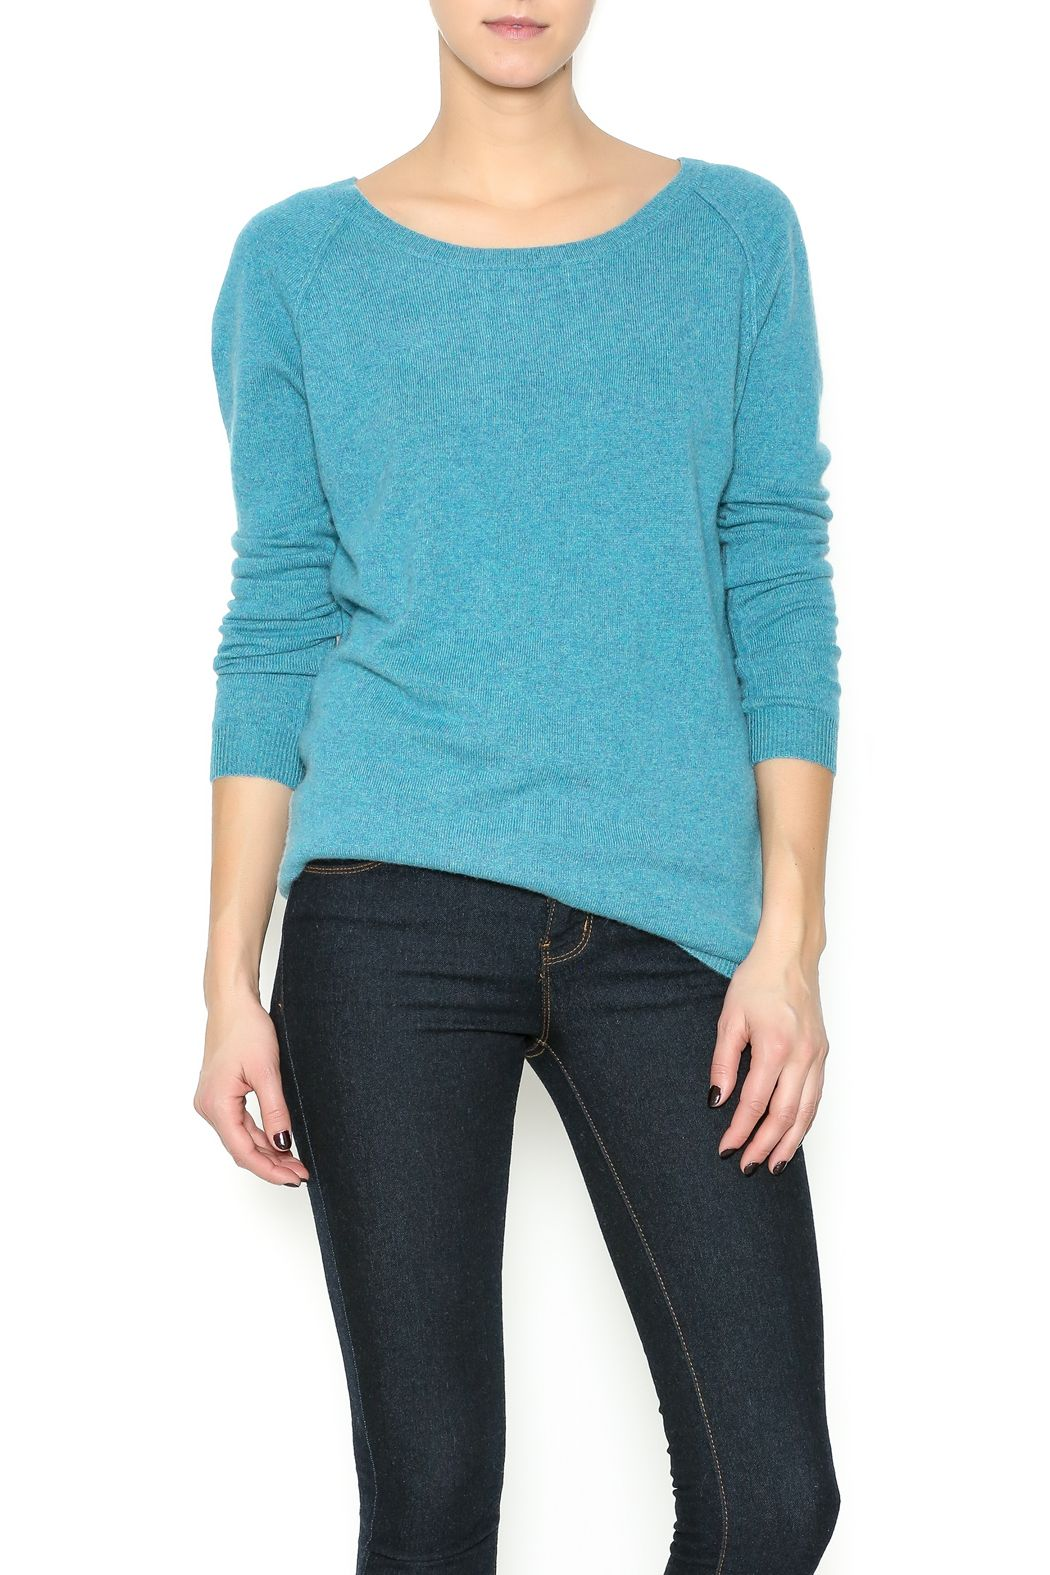 Boat neck pull over sweater with a key hole back.   Pull Over Sweater by Not Shy. Clothing - Sweaters Eastern Shore, Baltimore, Maryland